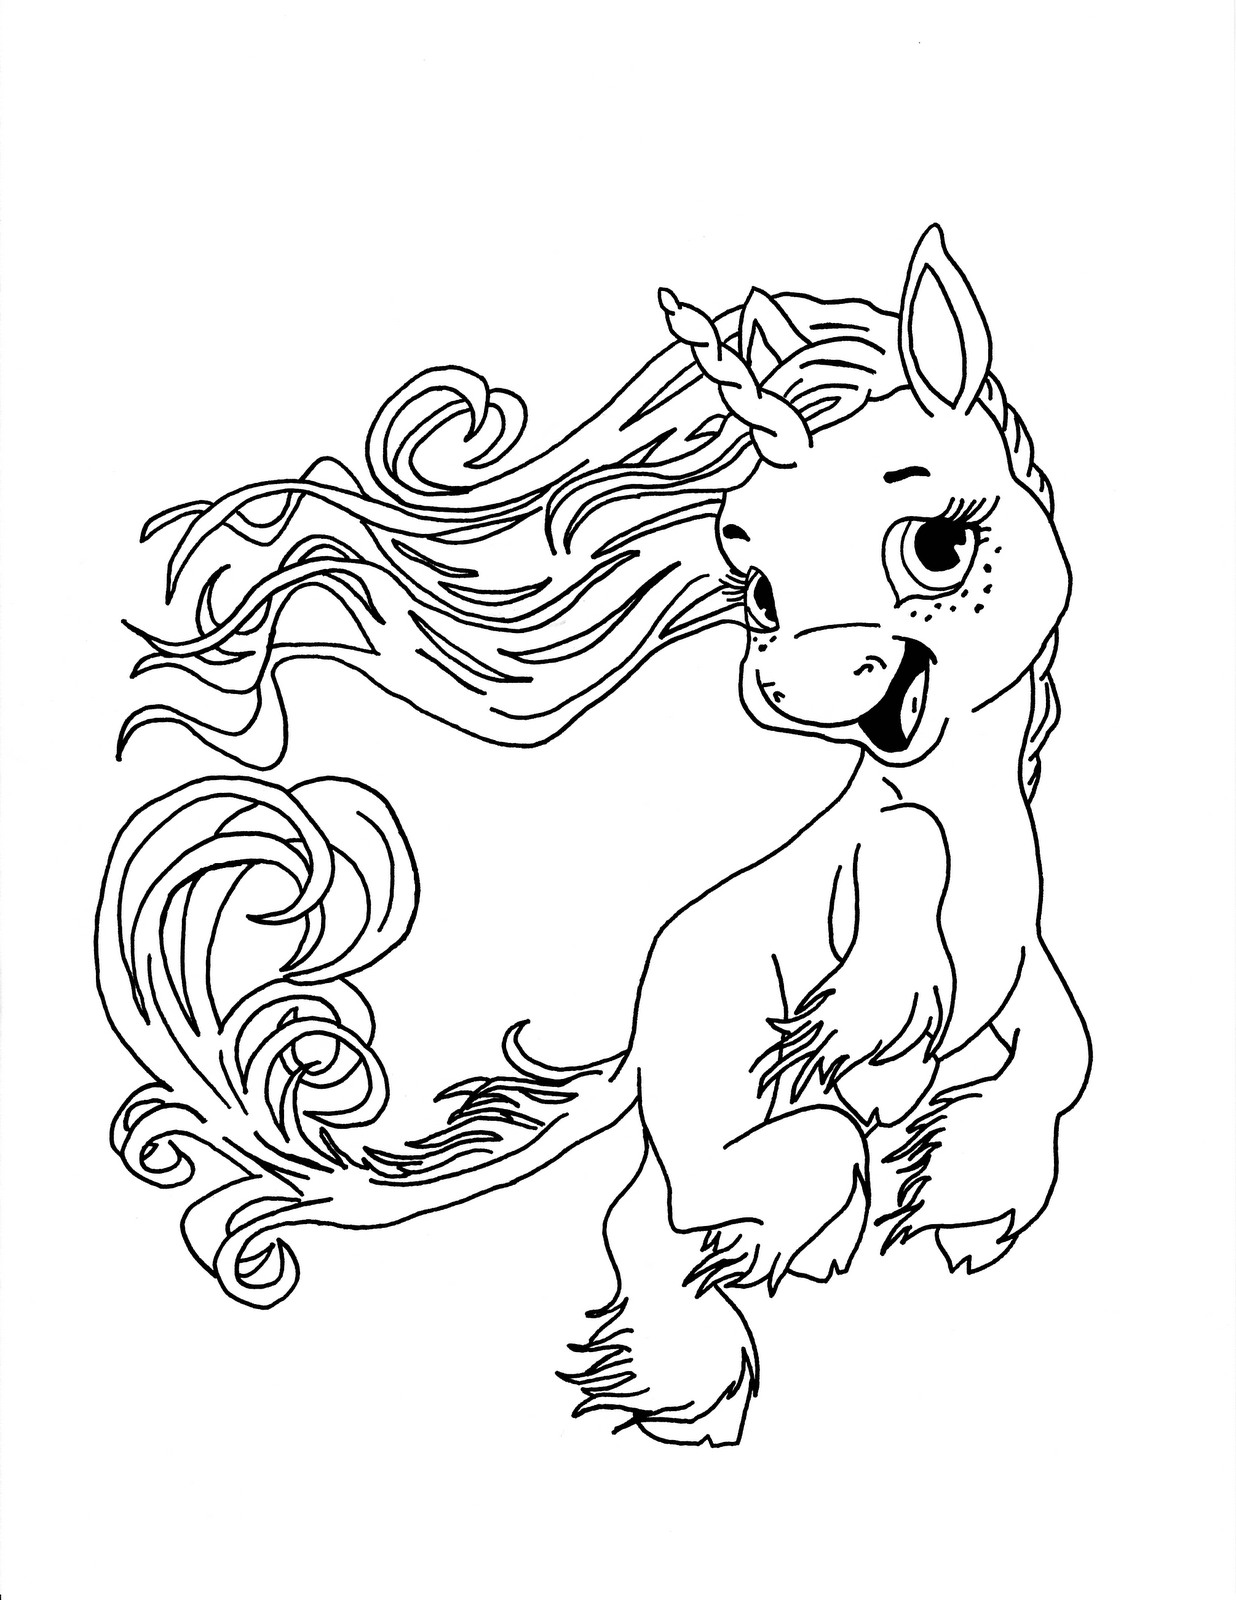 Unicorn Color Pages For Children Unicorn Coloring Pages Unicorn Pictures To Color Horse Coloring Pages